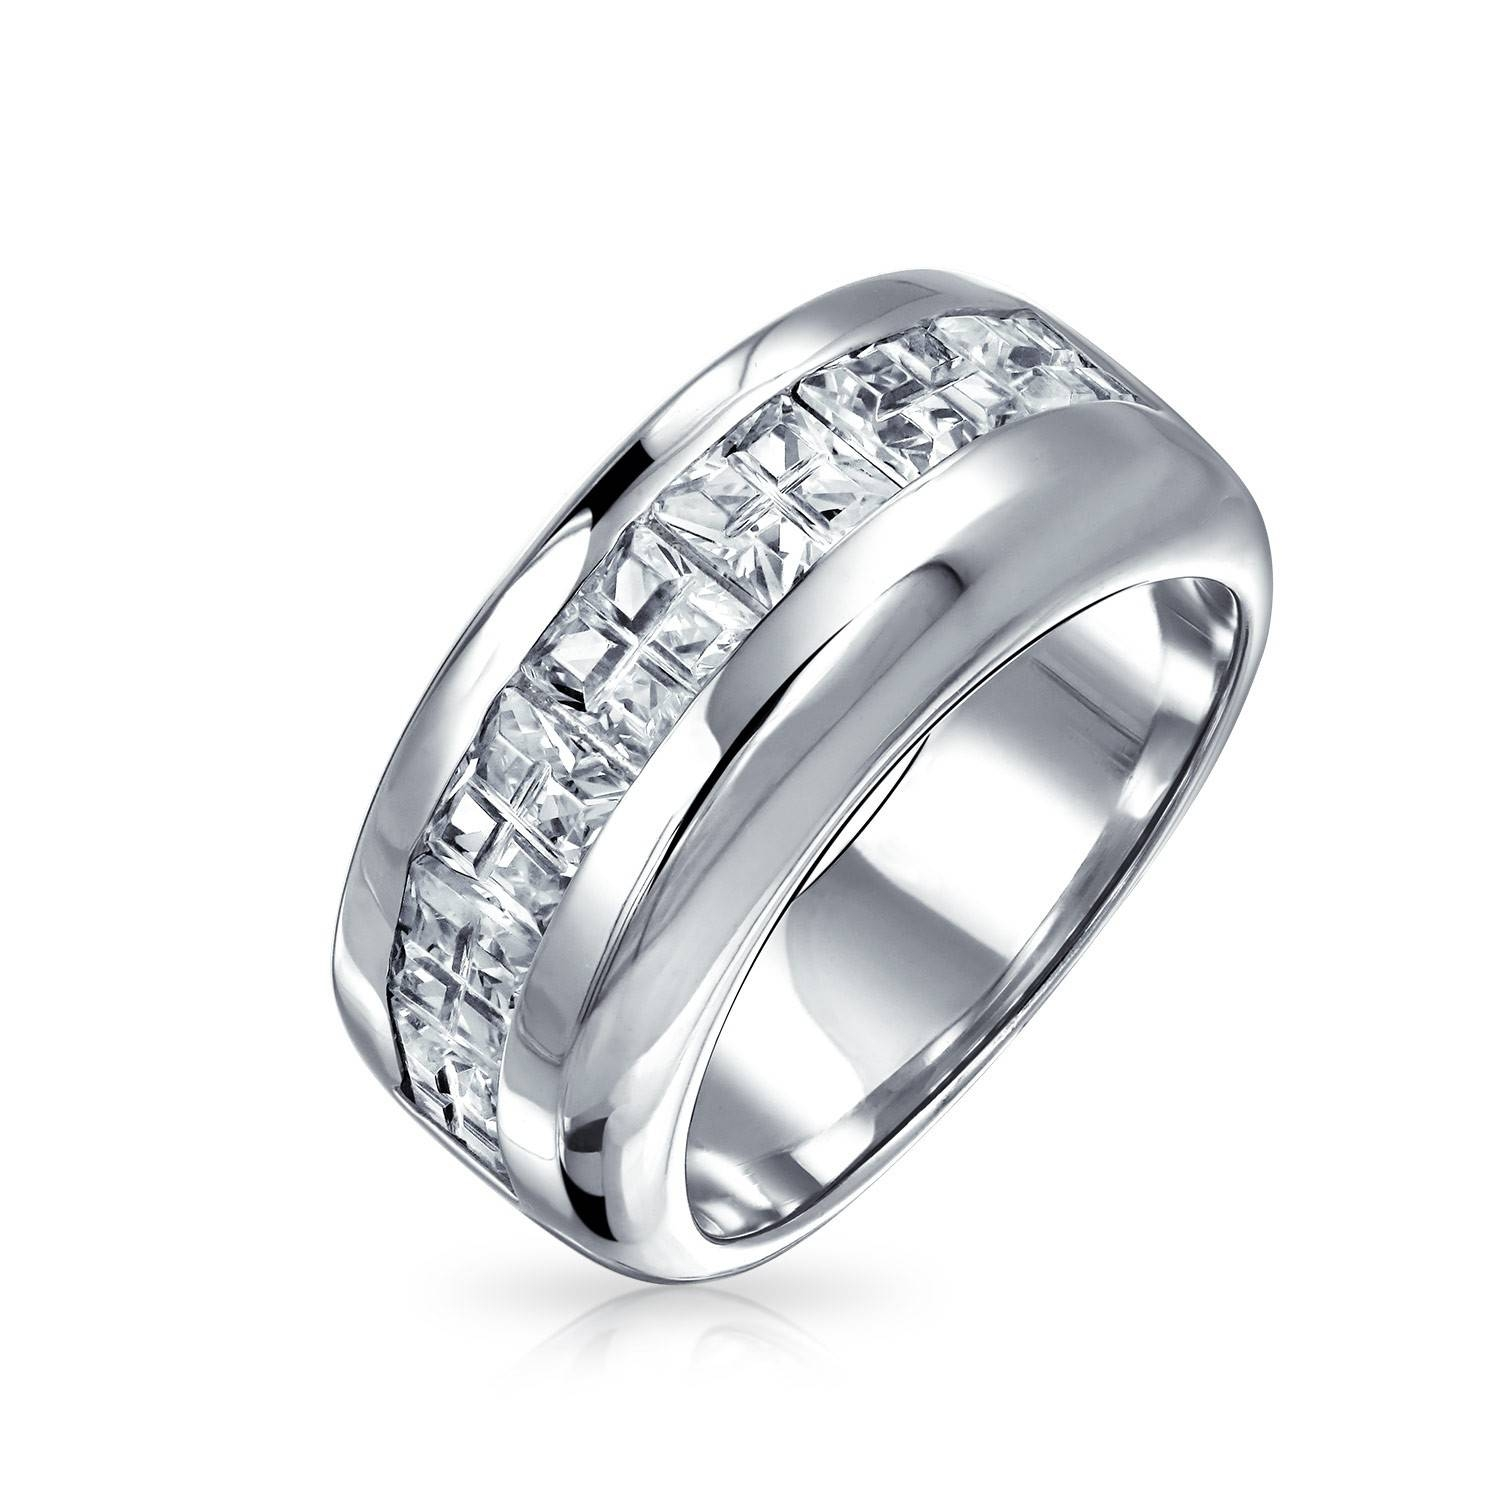 Wedding Rings : Tungsten Mens Wedding Bands Women's Black Titanium With Regard To 2018 Silver Womens Wedding Bands (View 15 of 15)